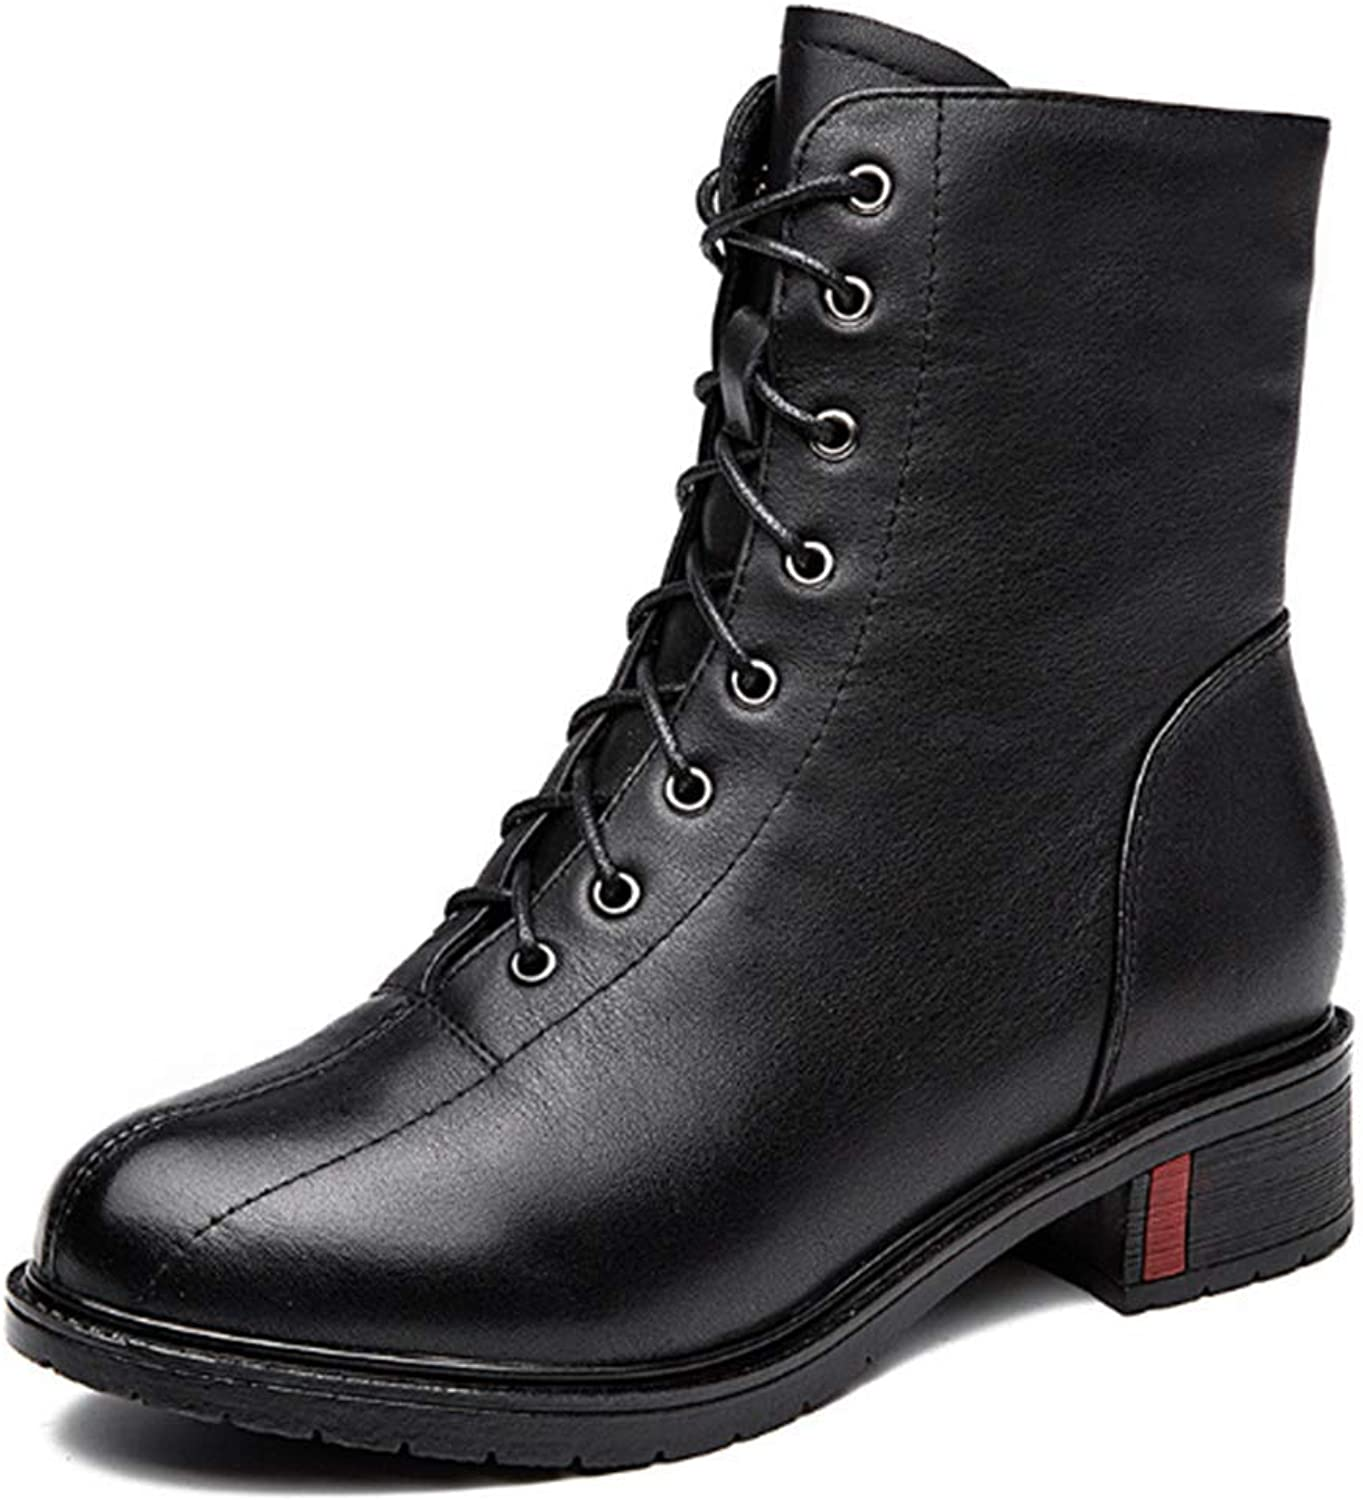 BREAORTION Women's Casual Genuine Leather Martin Boots Fashion Ladies Lace-up Ankle Boots